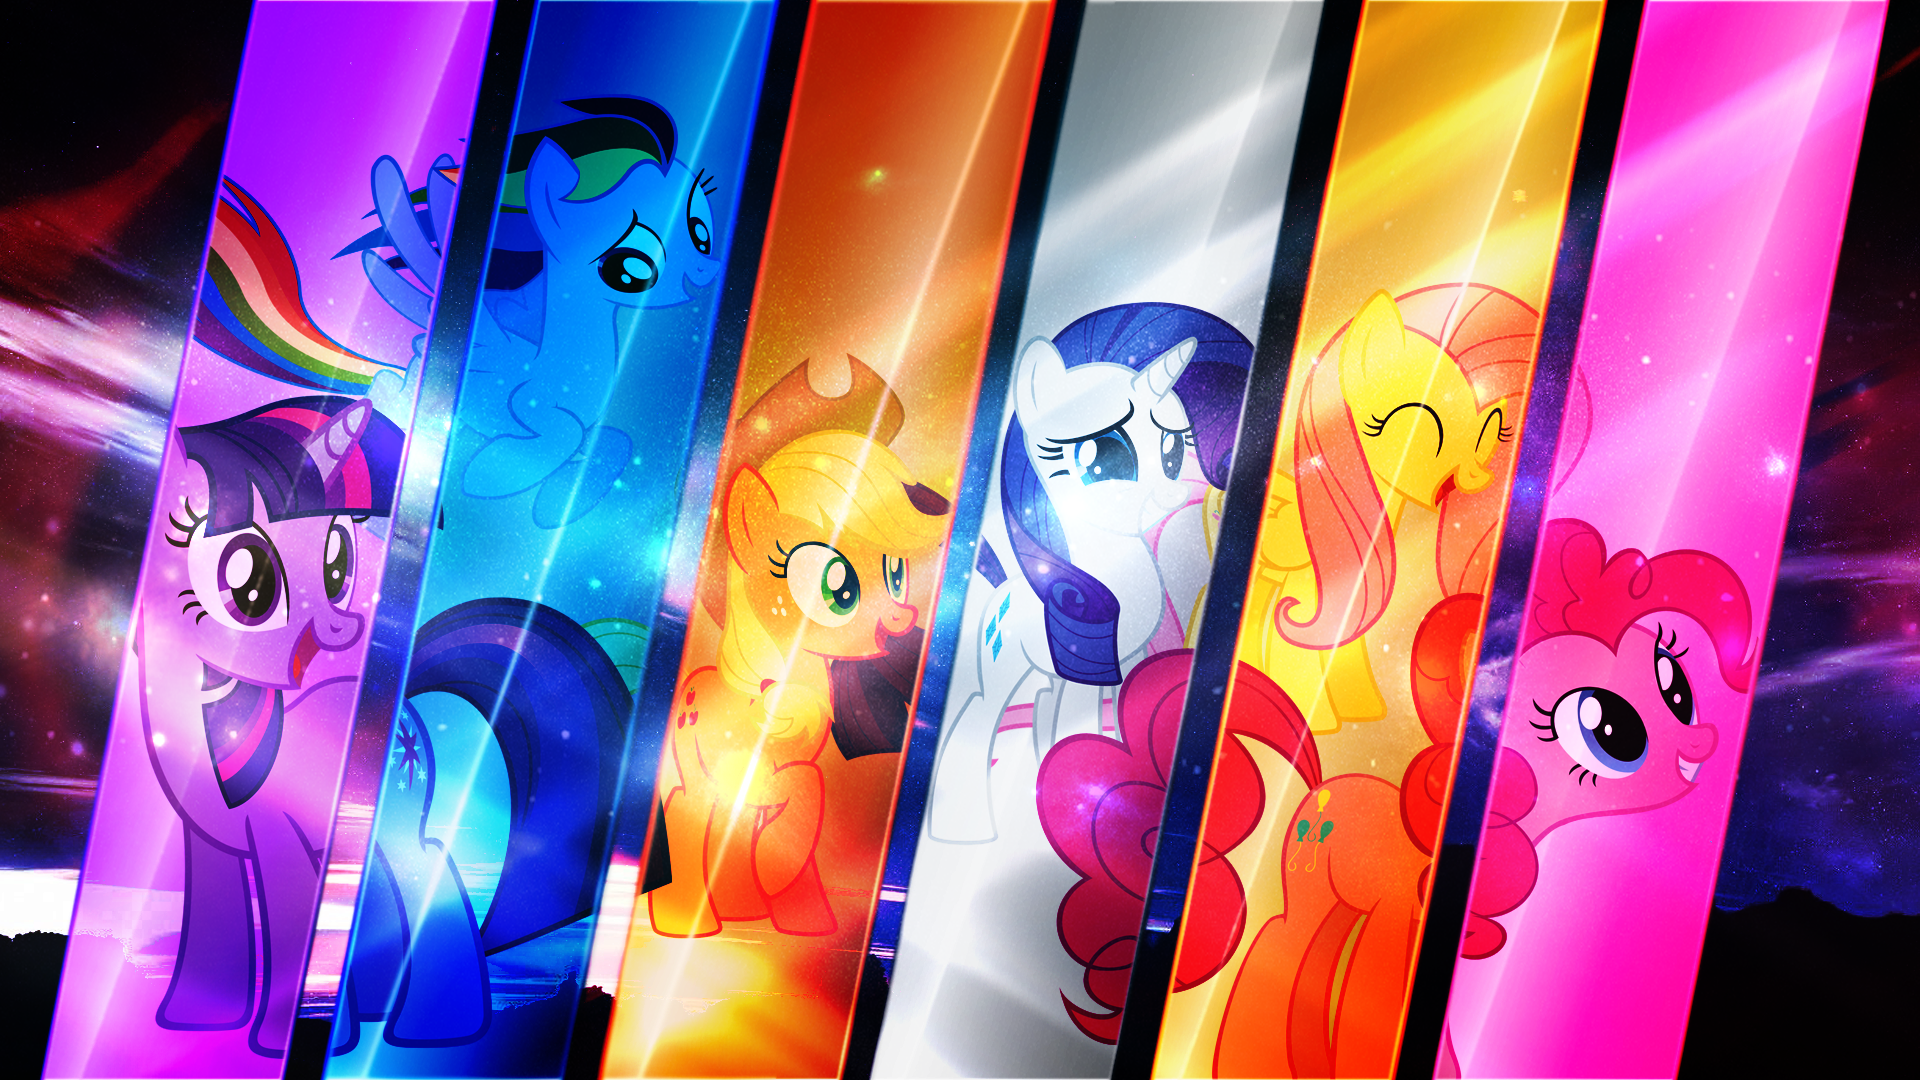 Wallpapers - Brony.com | T-Shirts and Apparel for Bronies ...